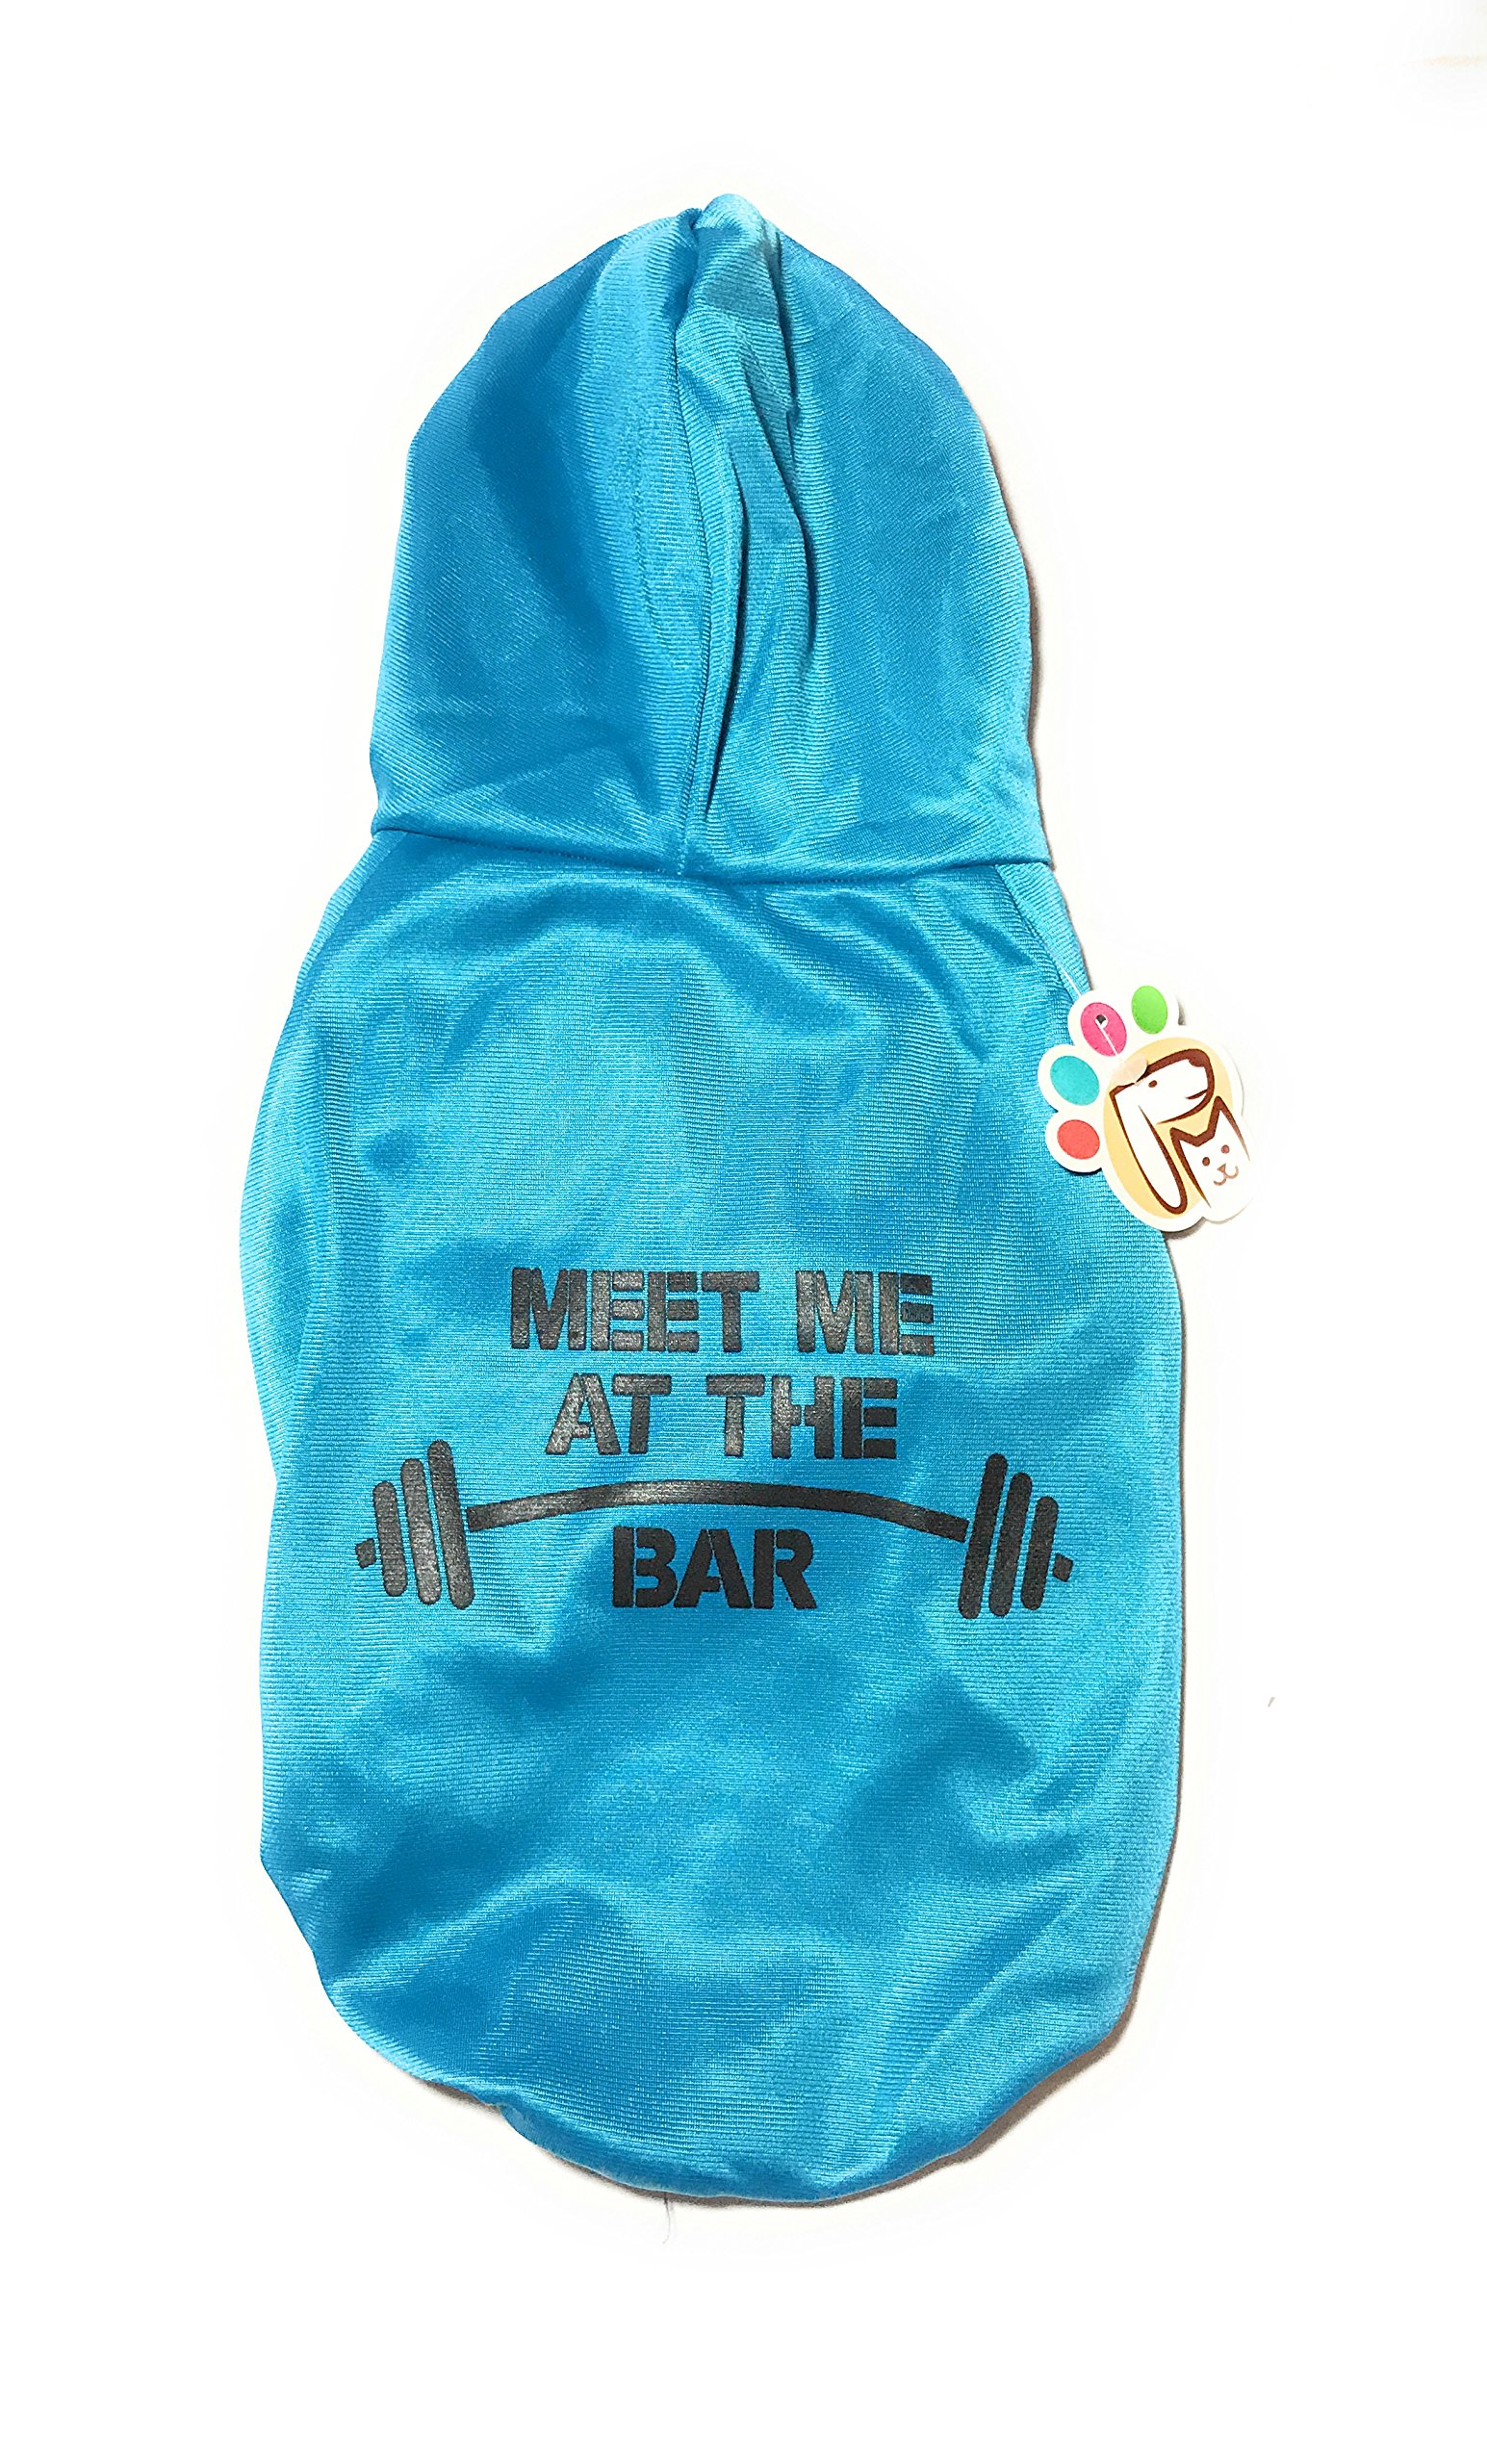 Dog or Puppy Sweater Hoodie ´Meet Me At The Bar´ Blue for Medium or Large Pets L size/ Large Fashion and Funny Hoodie Shirt Petmont Brand For Boys Or Girls